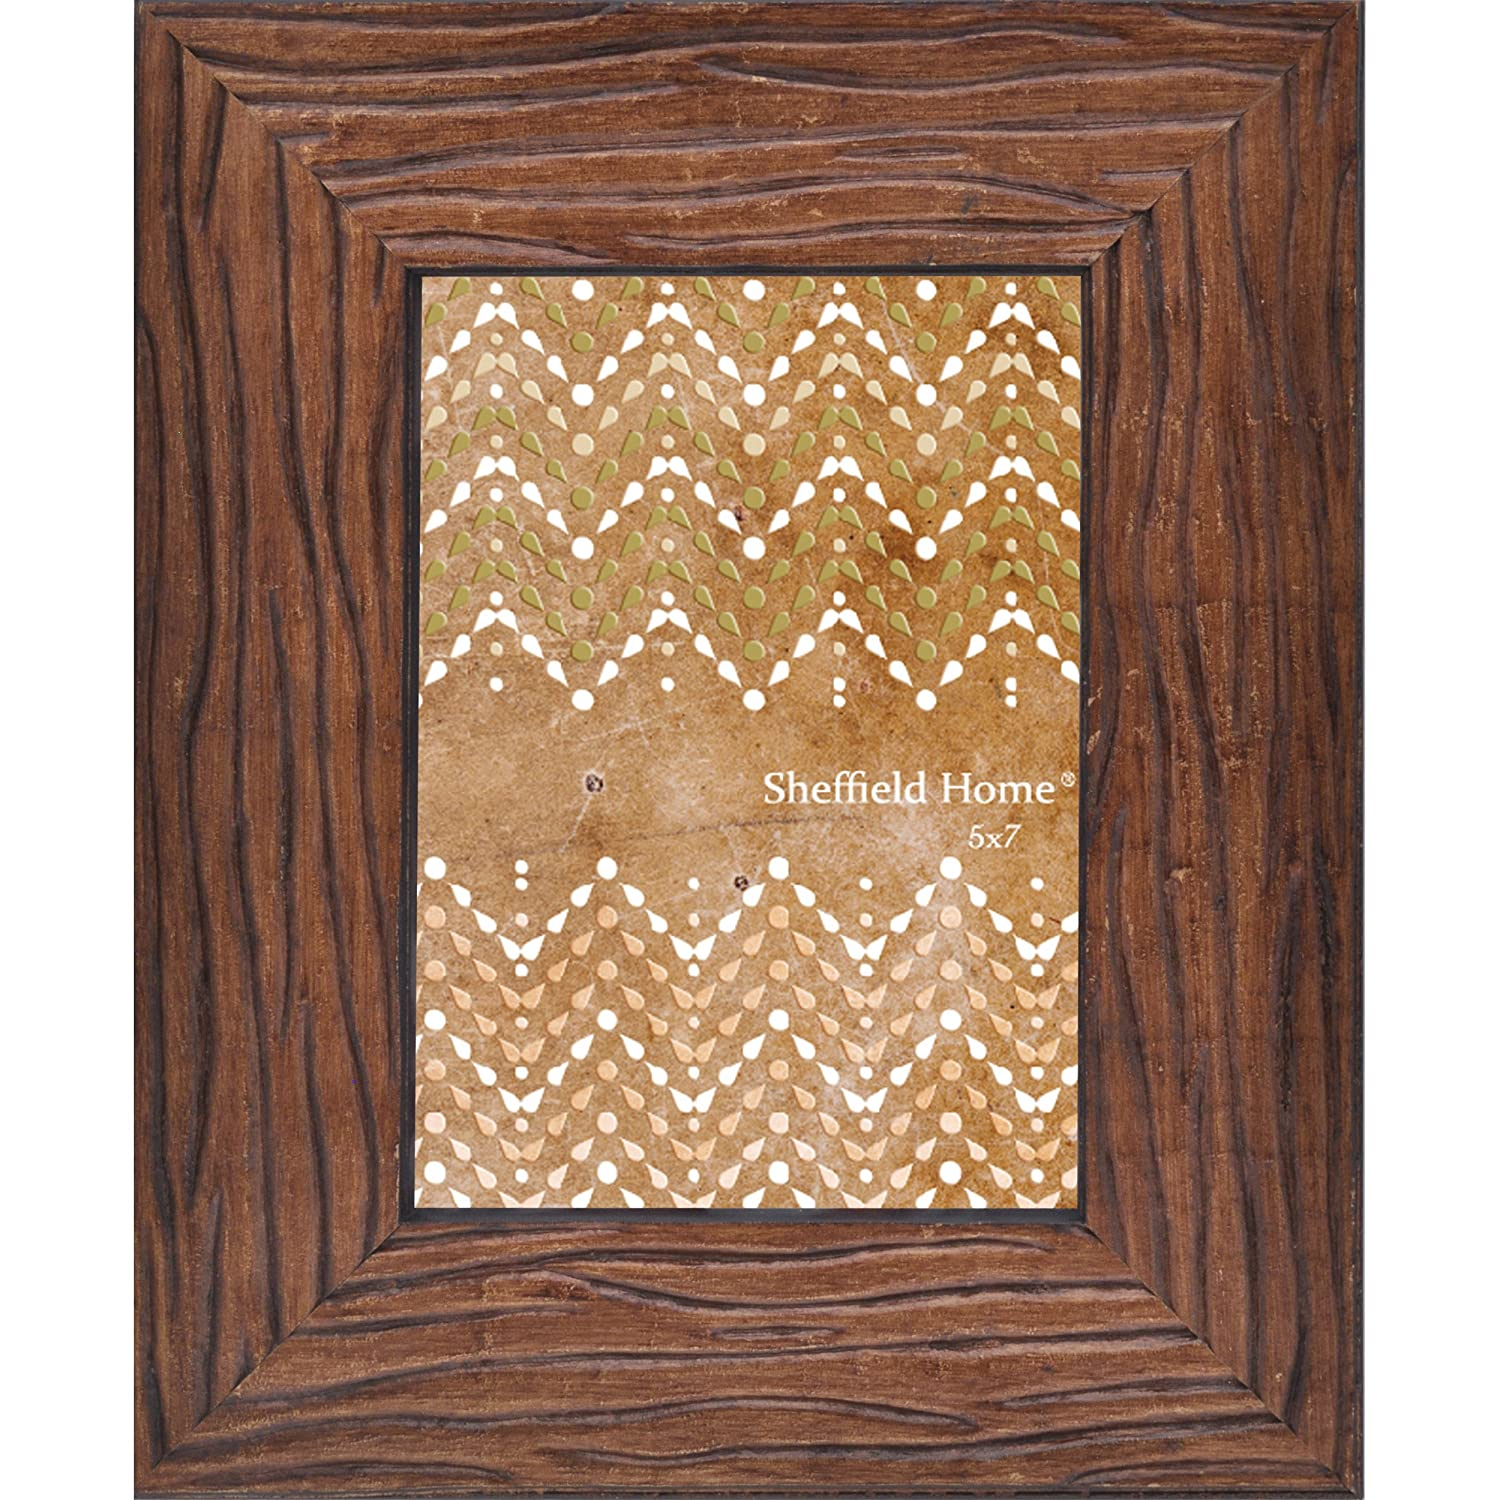 Sheffield Home Picture Frame Photo Brown Hard Scraped Textured Wood 5 by 7 (Natural)